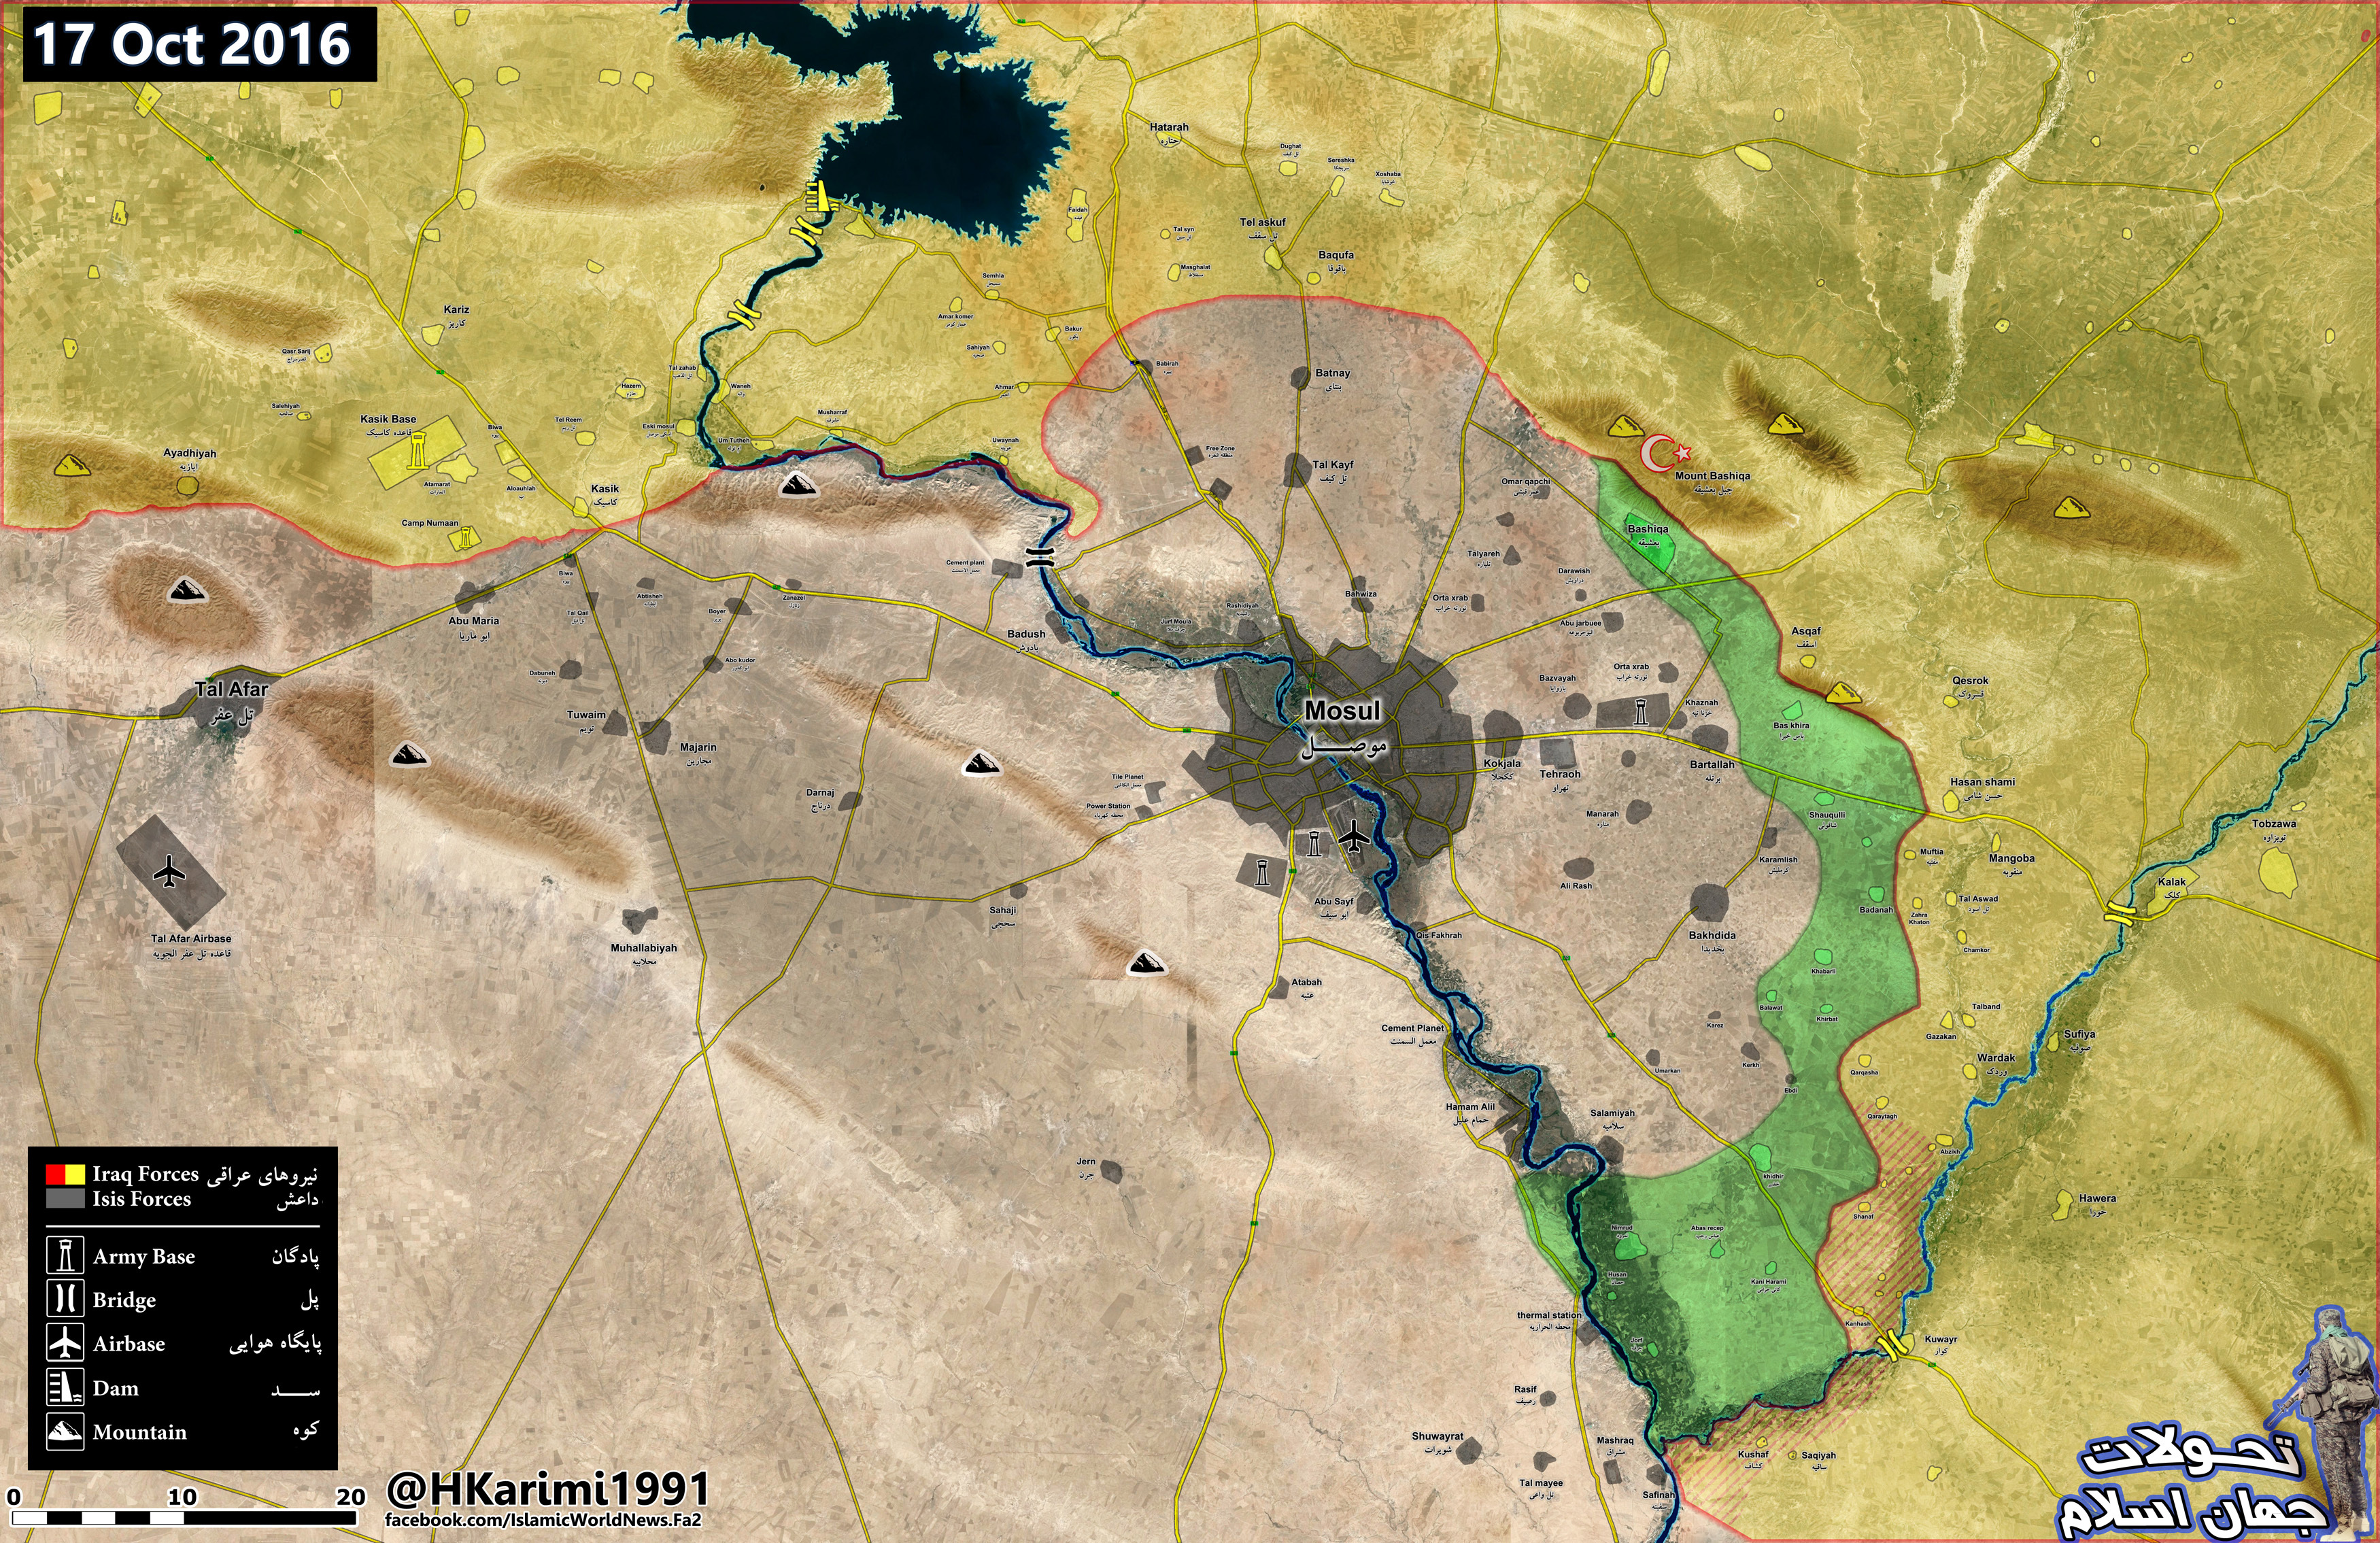 Iraqi Map Update: 1st Day of Battle for Mosul - Results